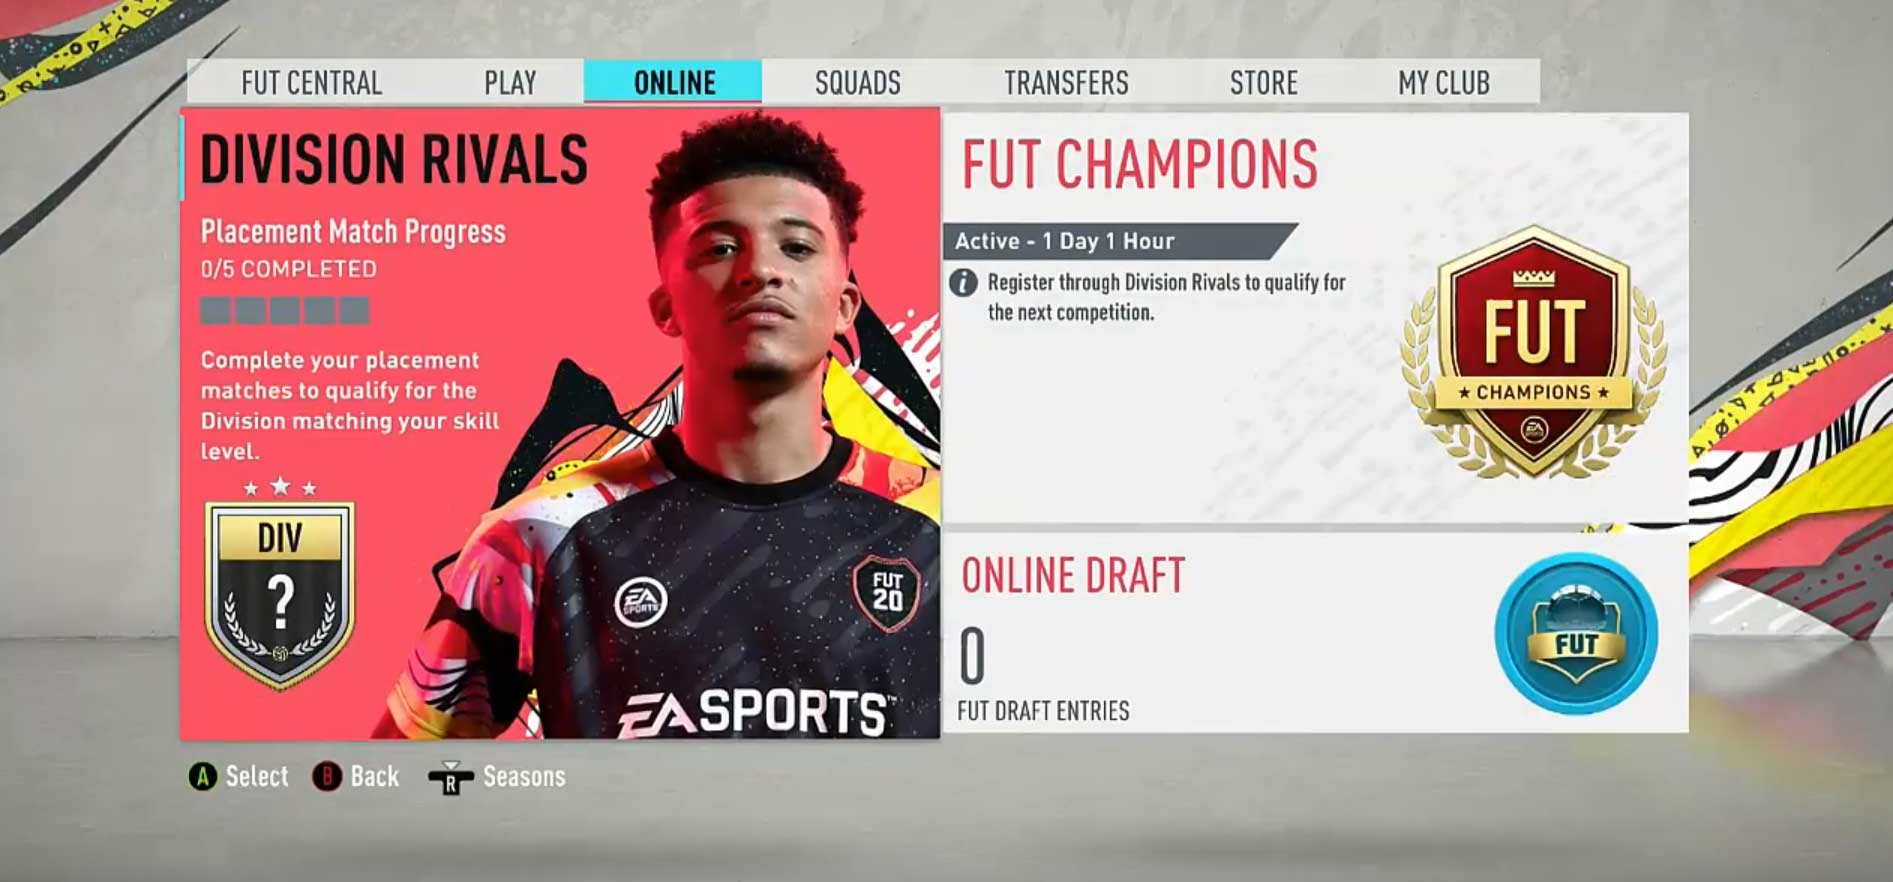 FUT Division Rivals Guide for FIFA 20 Ultimate Team